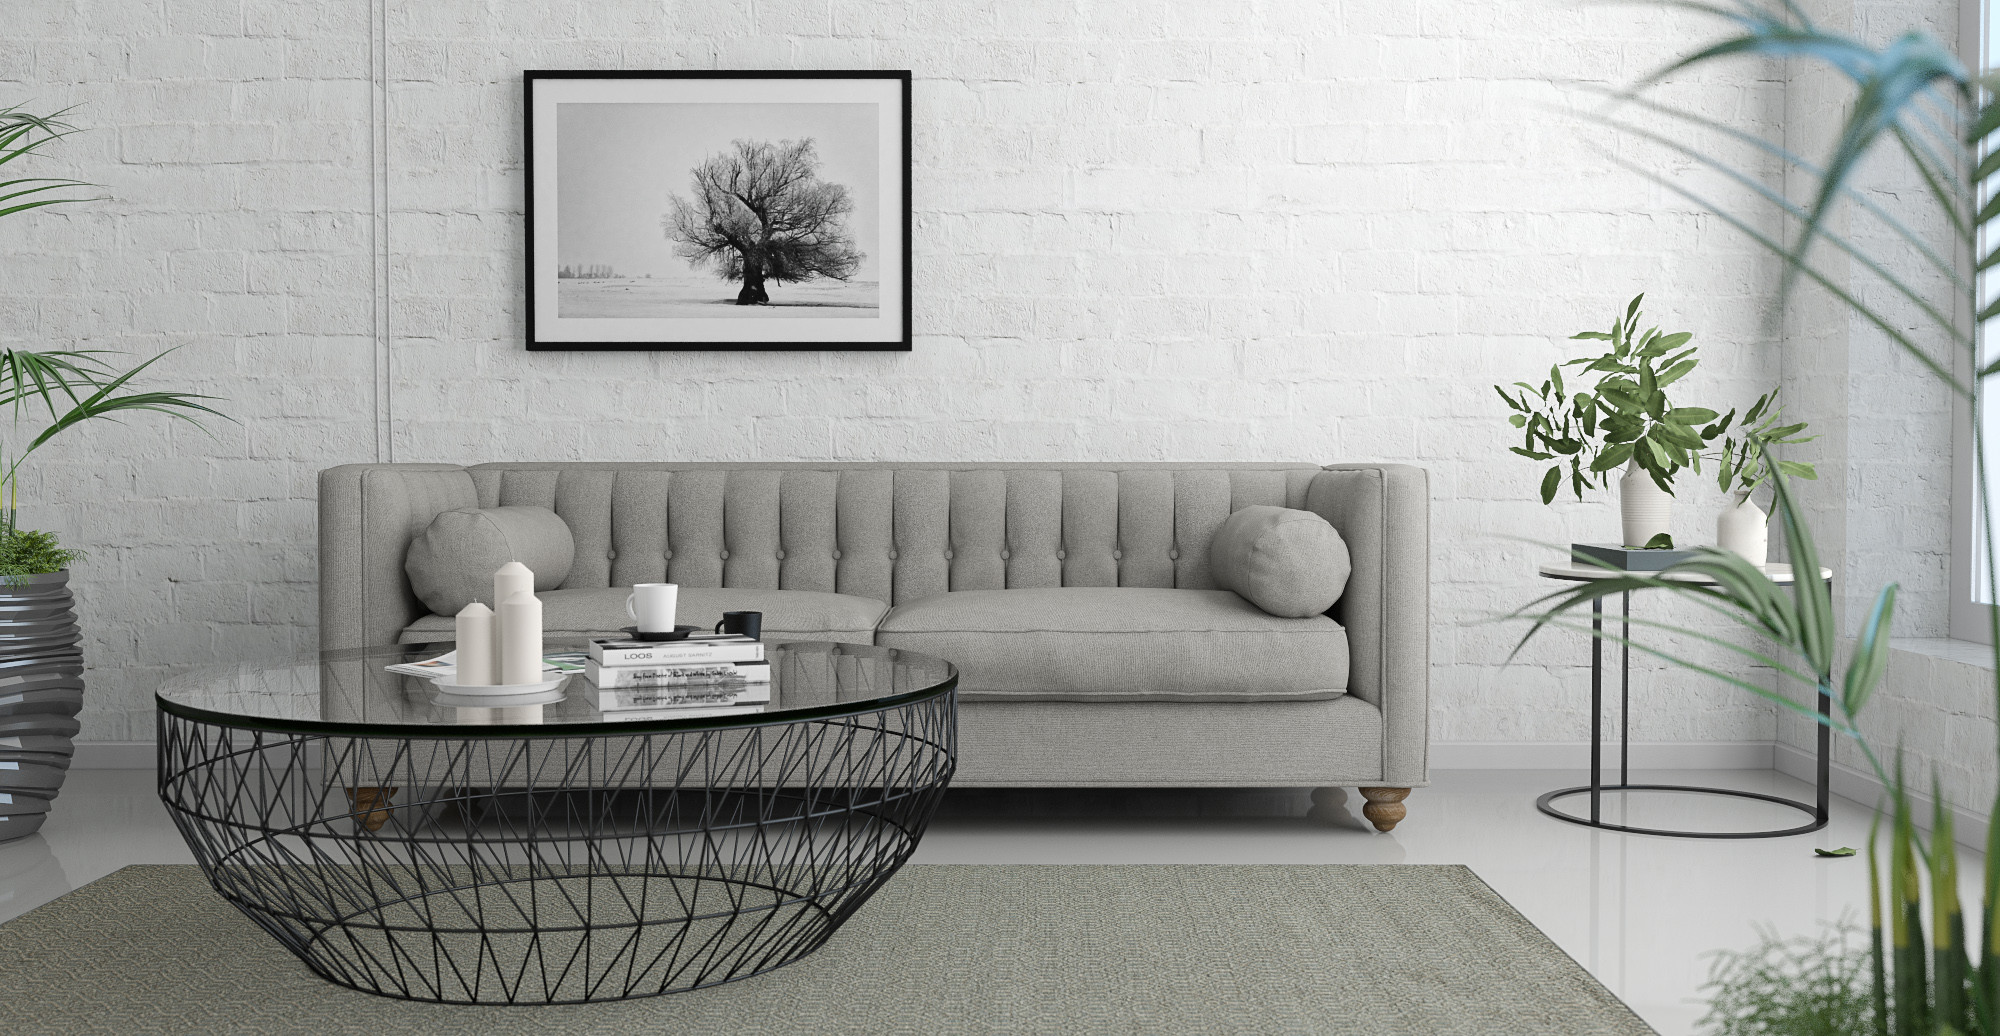 The Brosa Frost Print styled in modern contemporary living room